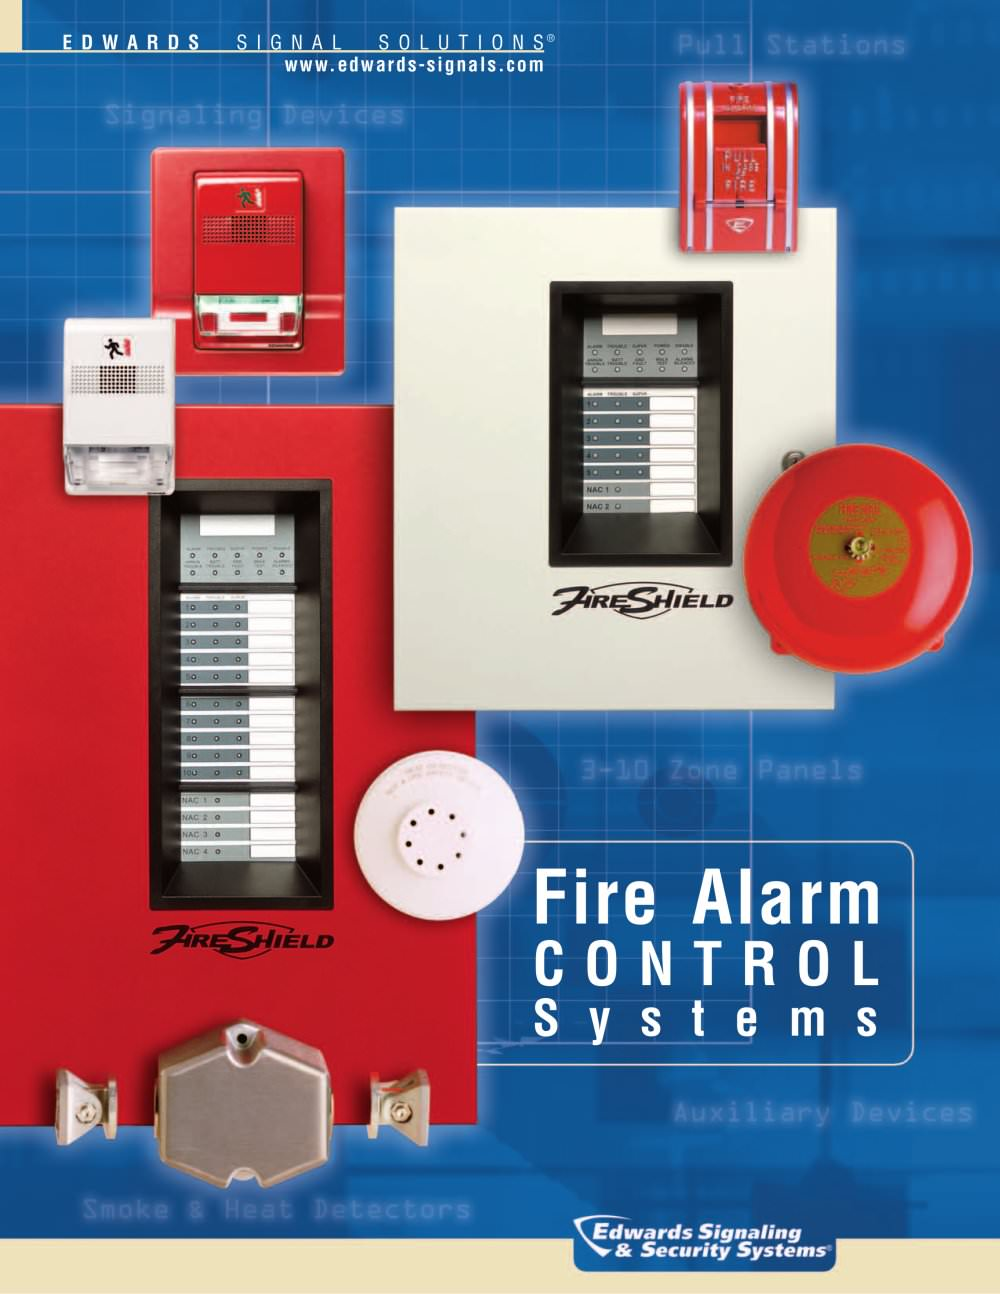 Fire Alarm Brochure - 1 / 8 Pages